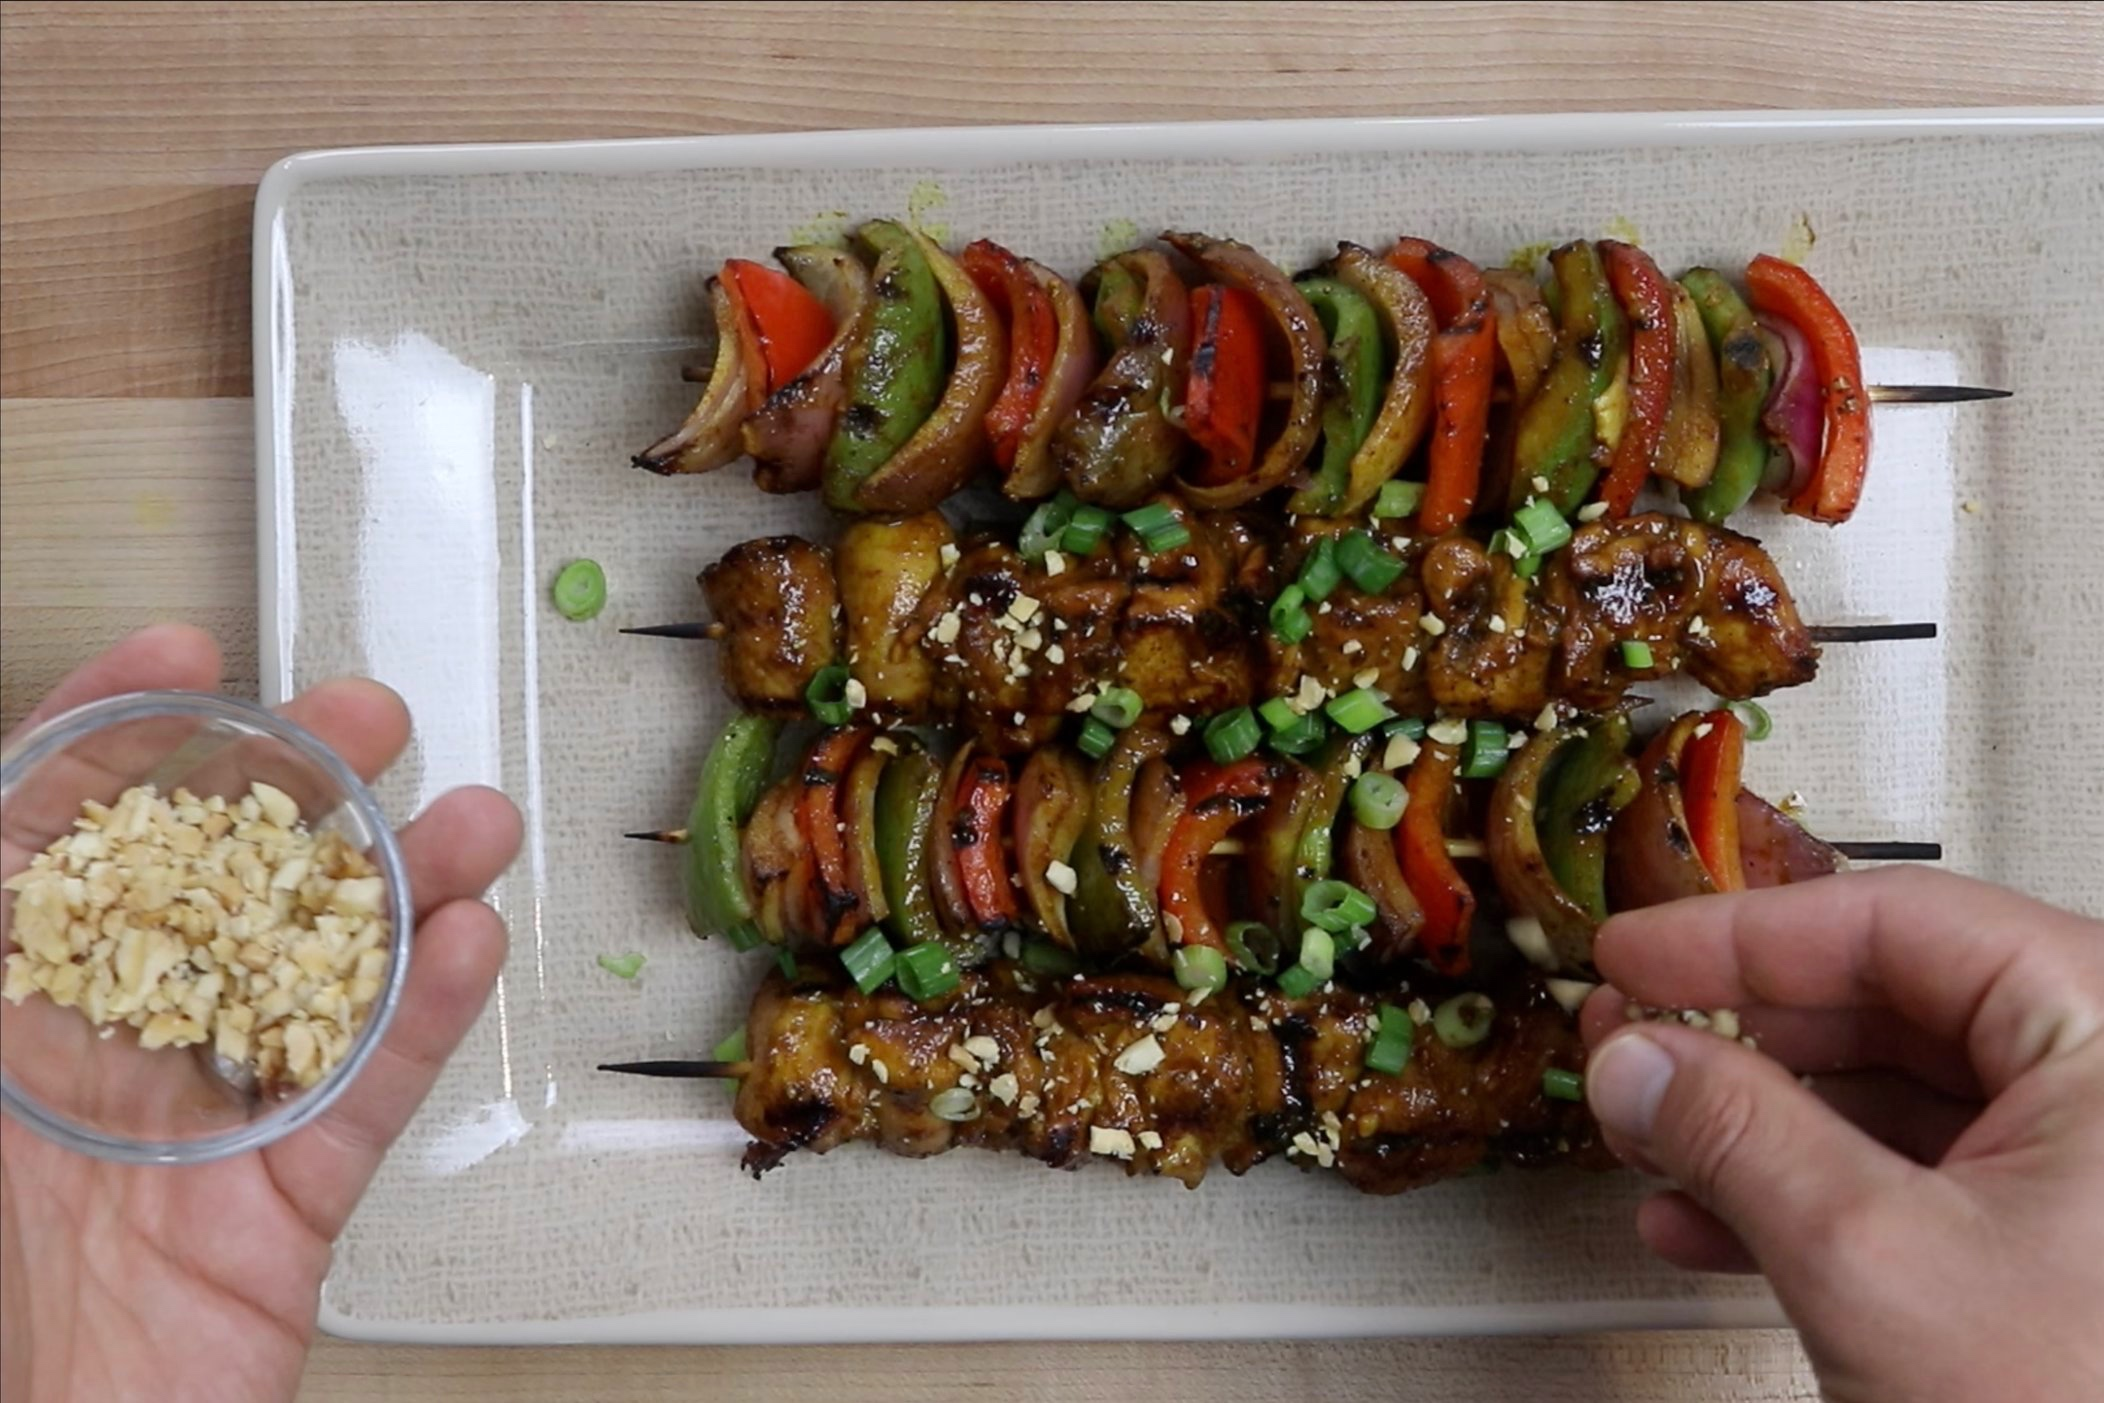 12.  Sprinkle with green onion and peanuts if desired. -